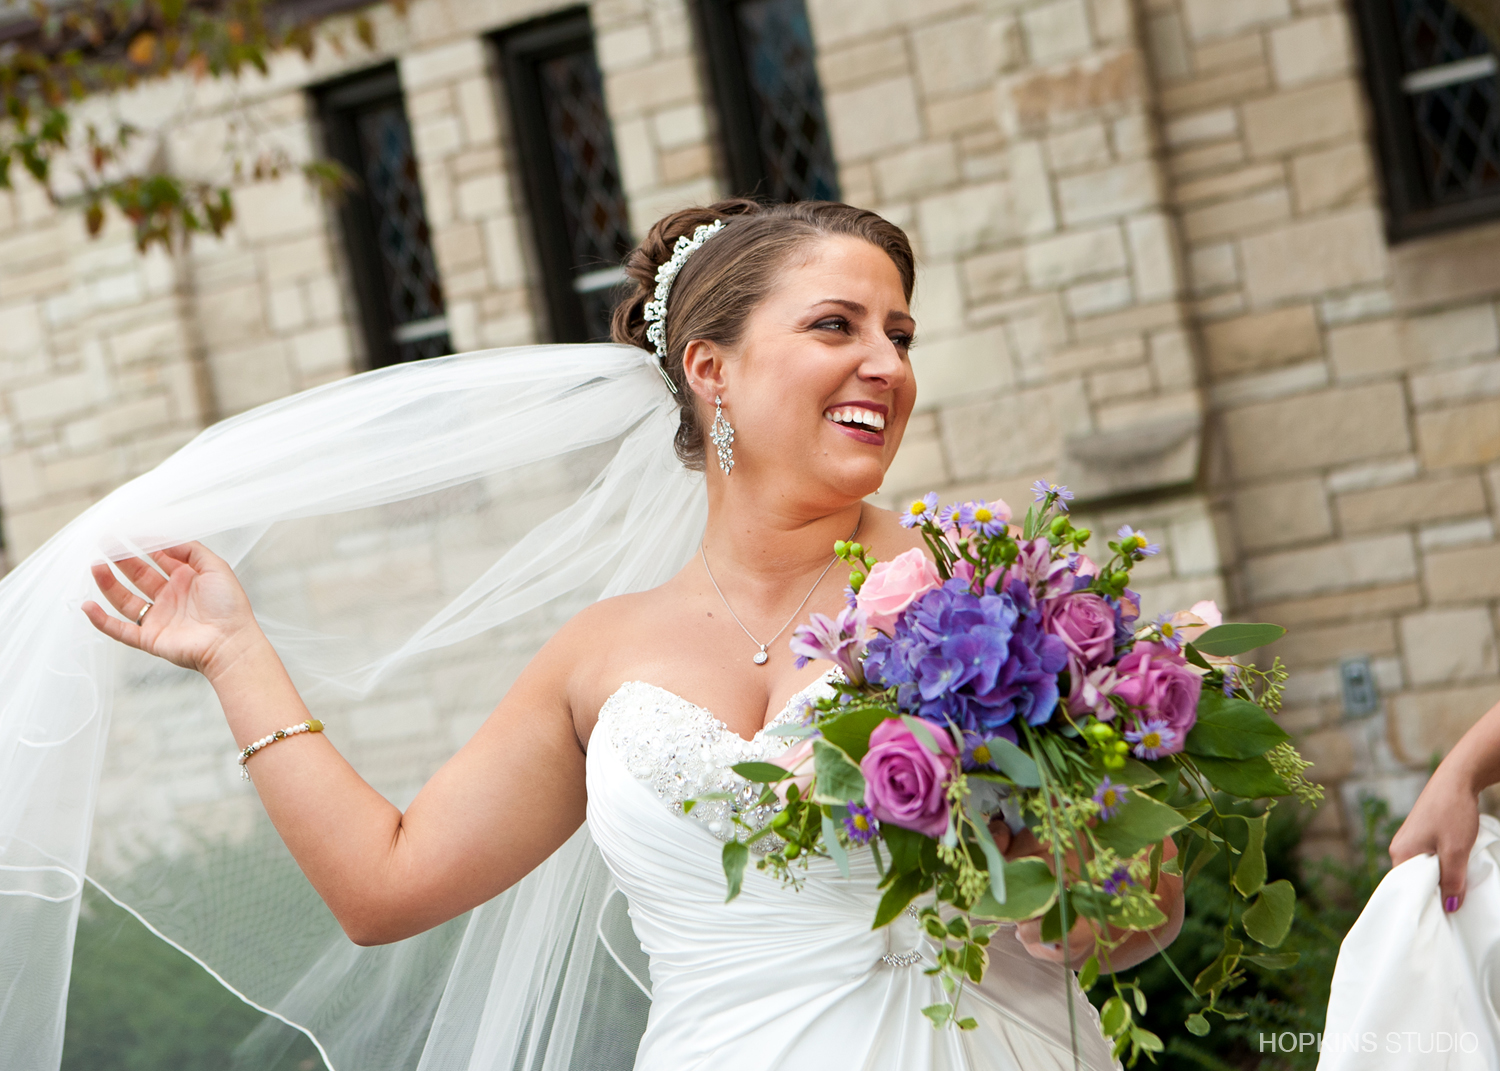 Wedding-Photography-Vineland-Center-Southwest-Michigan_20.jpg